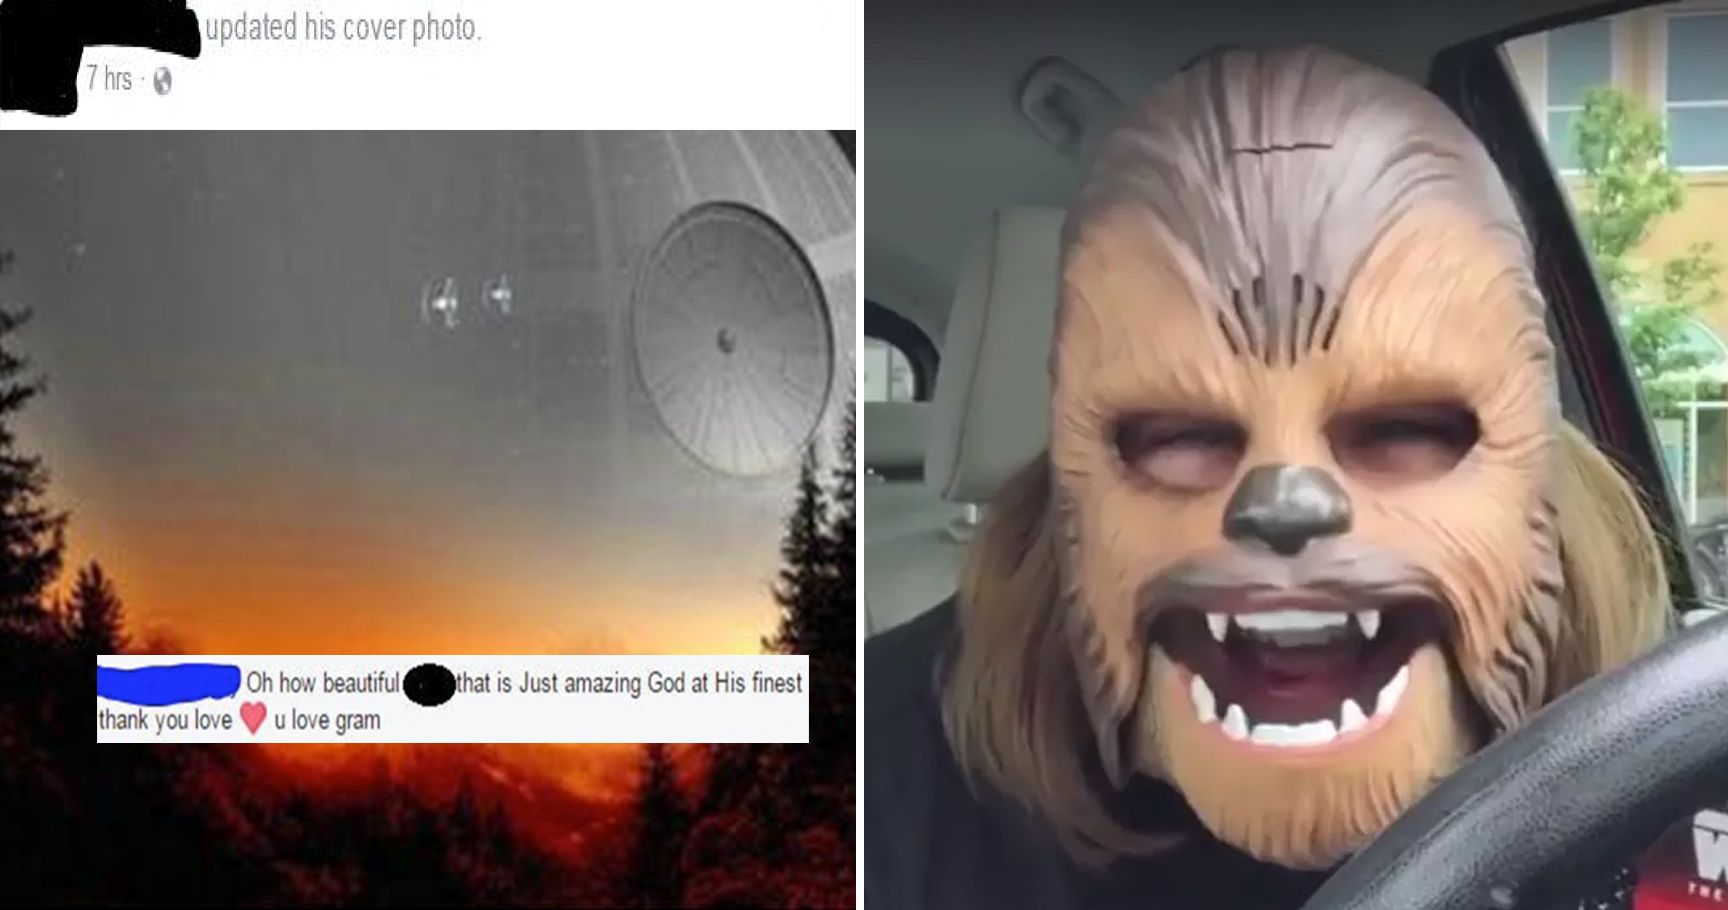 Best Of Reddit: 15 r/oldpeoplefacebook Posts That Will Have You Laughing Hysterically